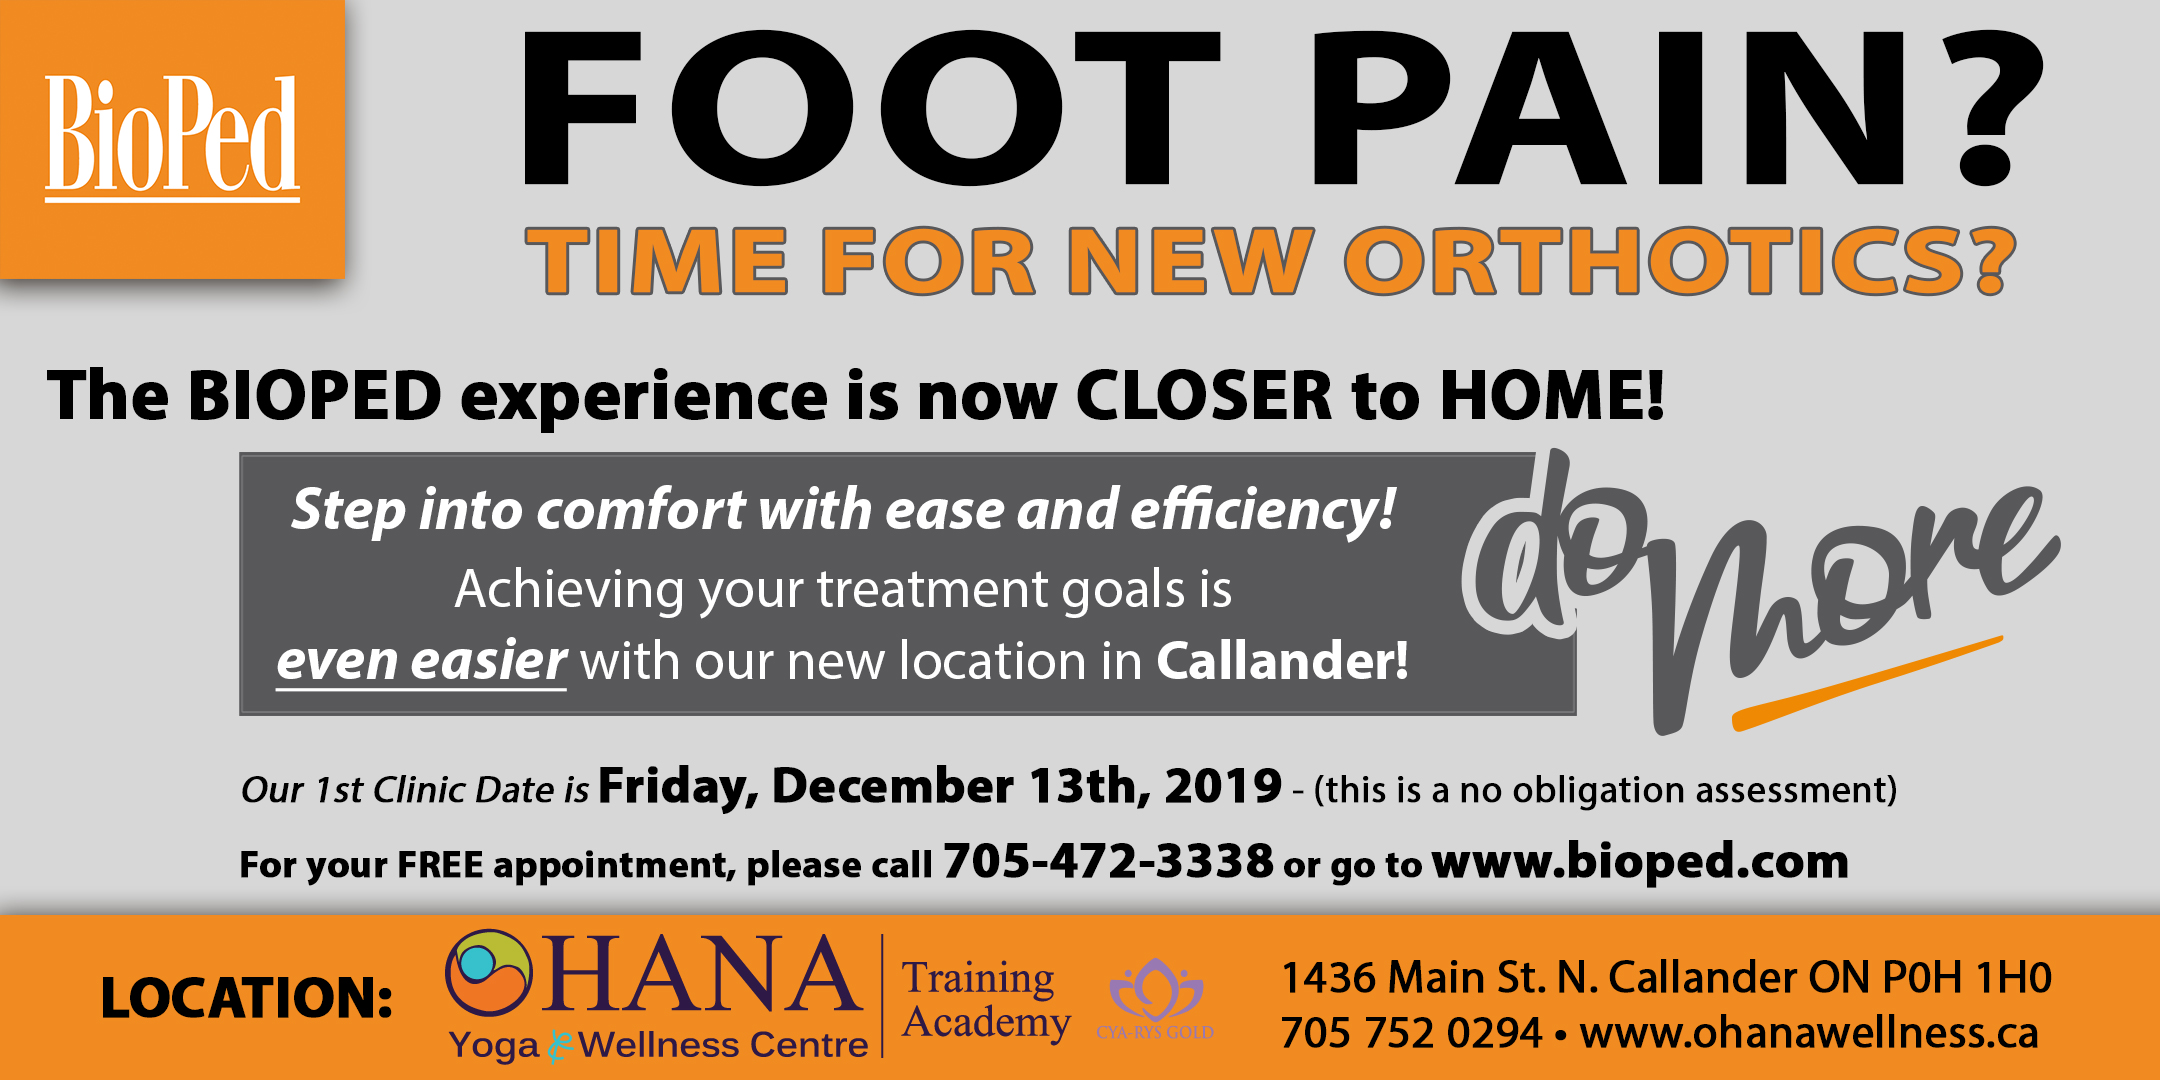 Foot Pain - BIOPED no obligation assessment at OHANA